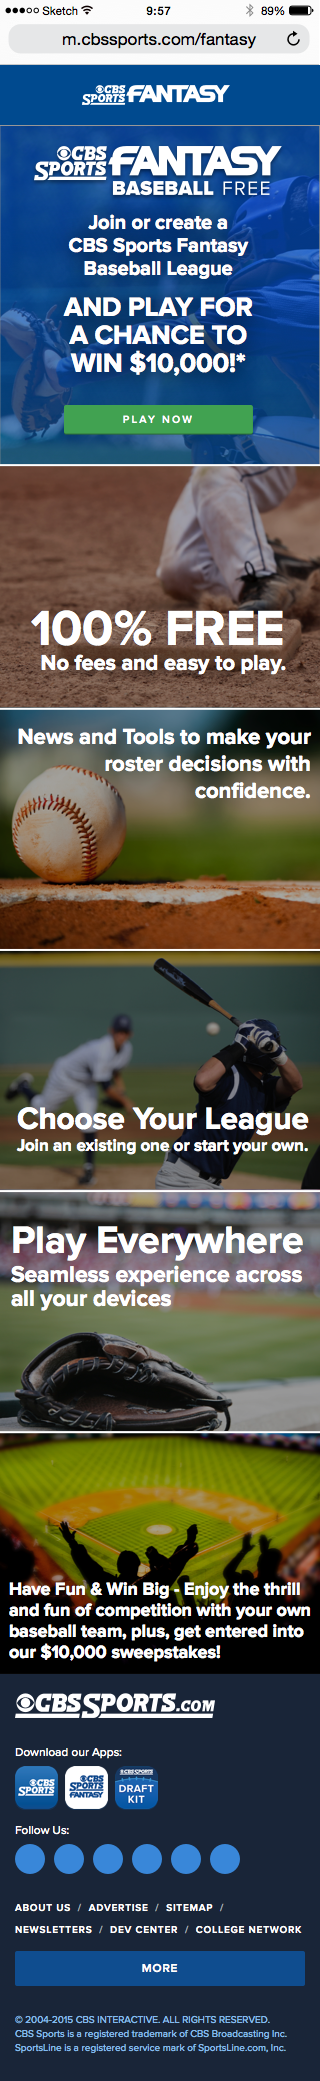 320_2016_CBS_SPORTS_Baseball_FREE_League_Landing_Page.png